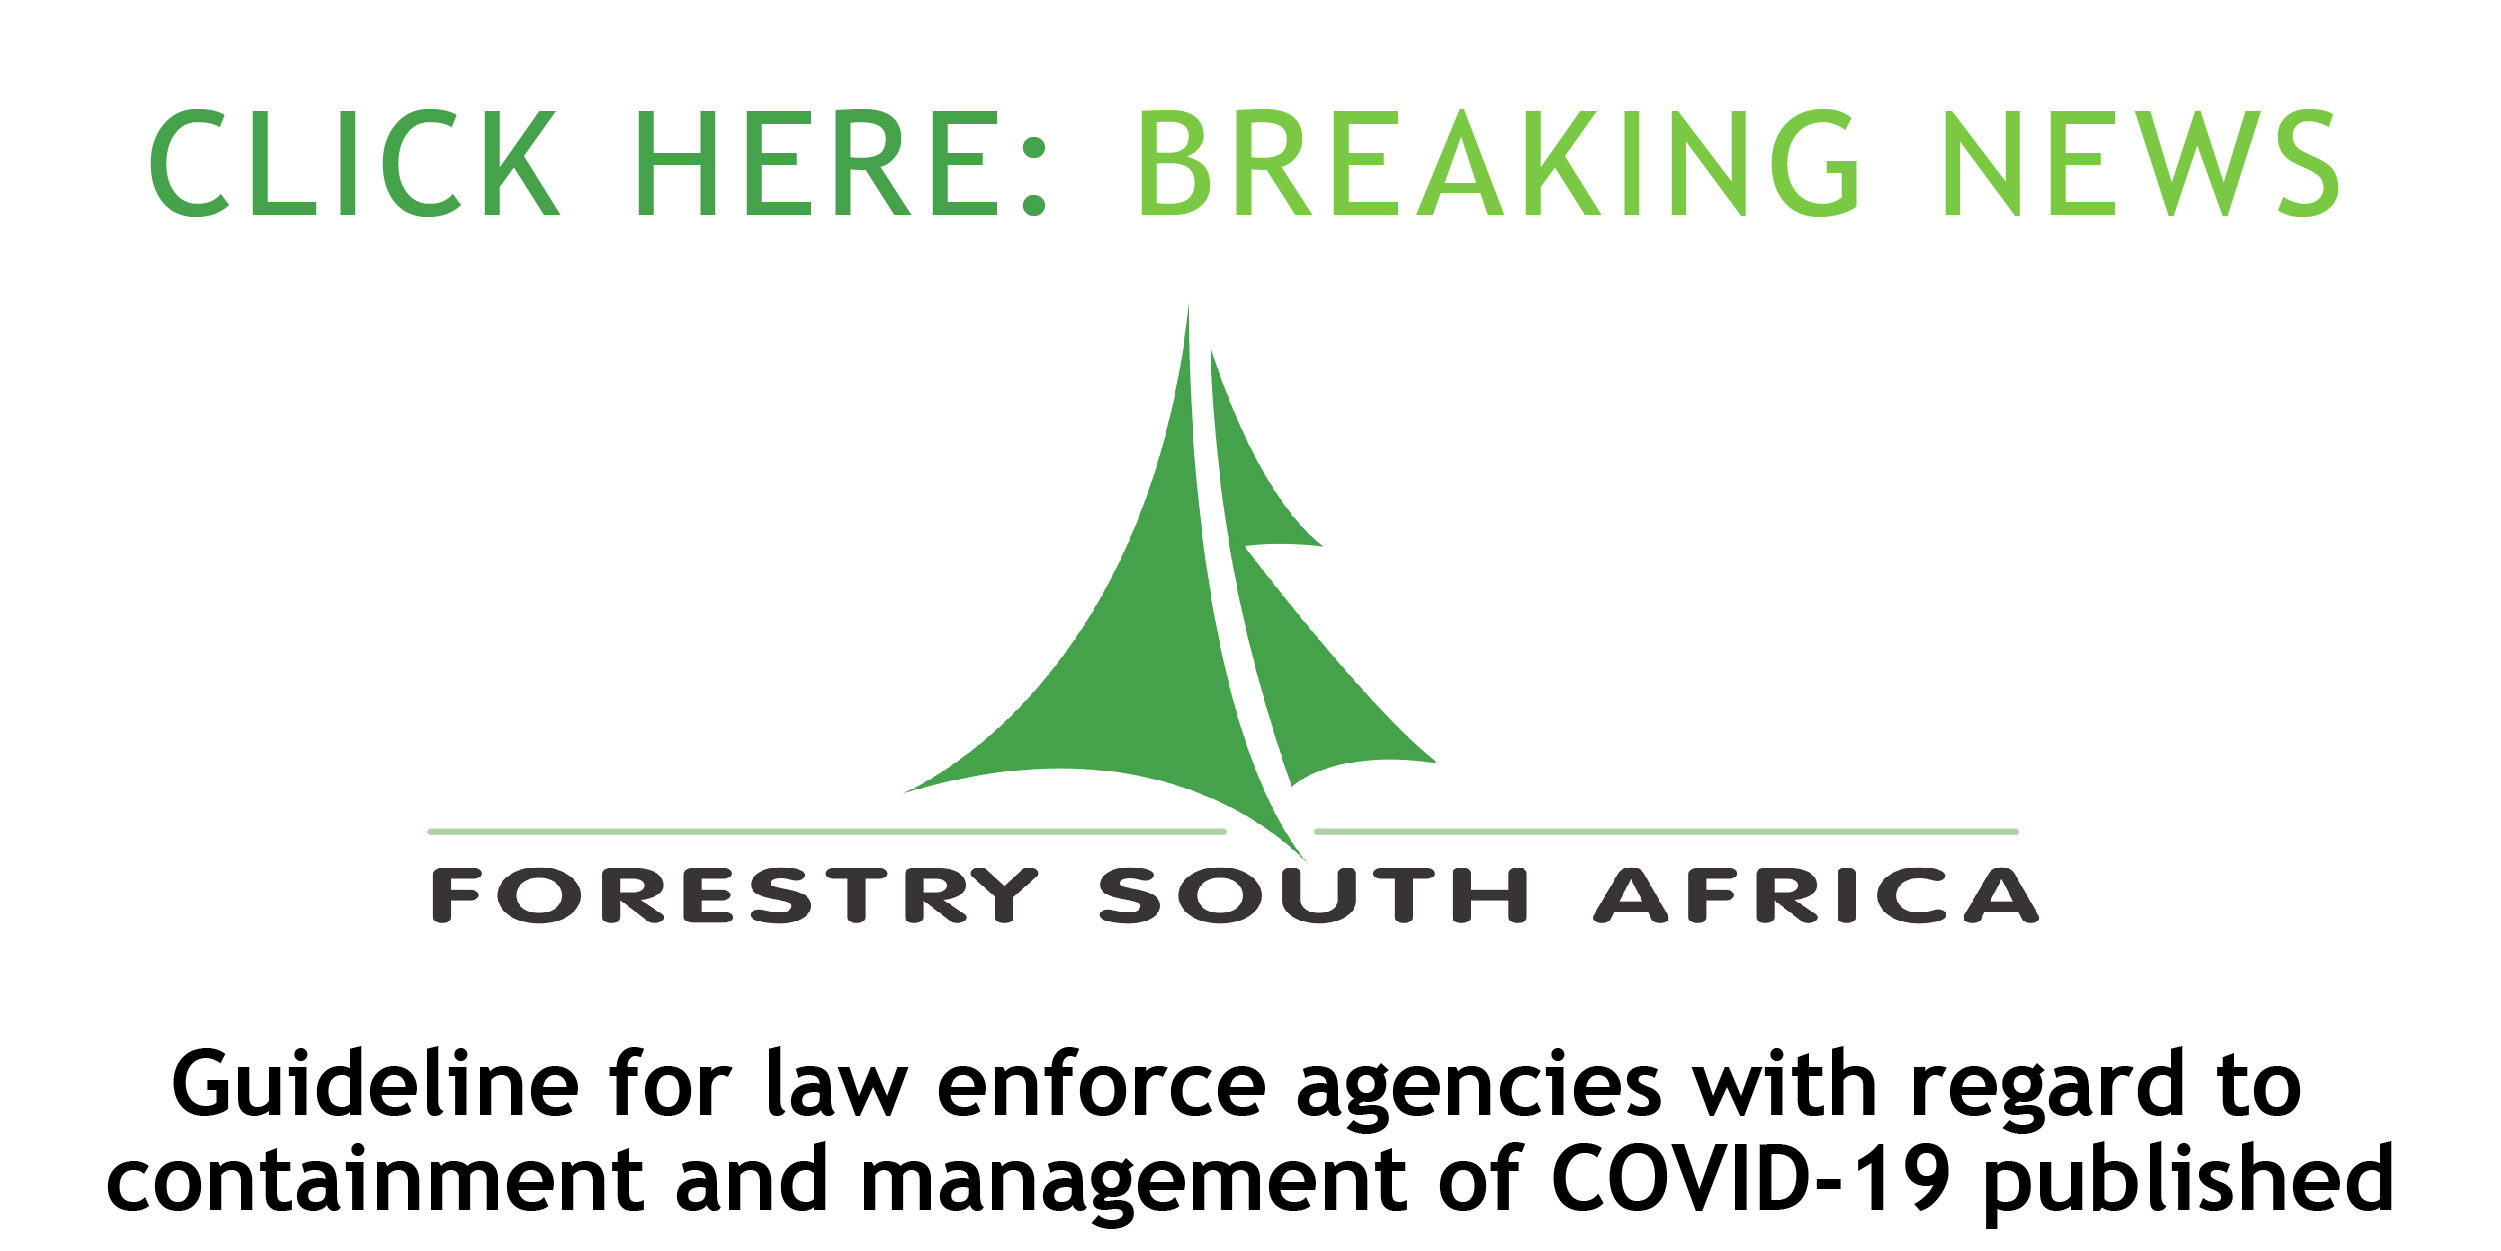 Guideline for law enforce agencies with regard to containment and management of COVID-19 published-01